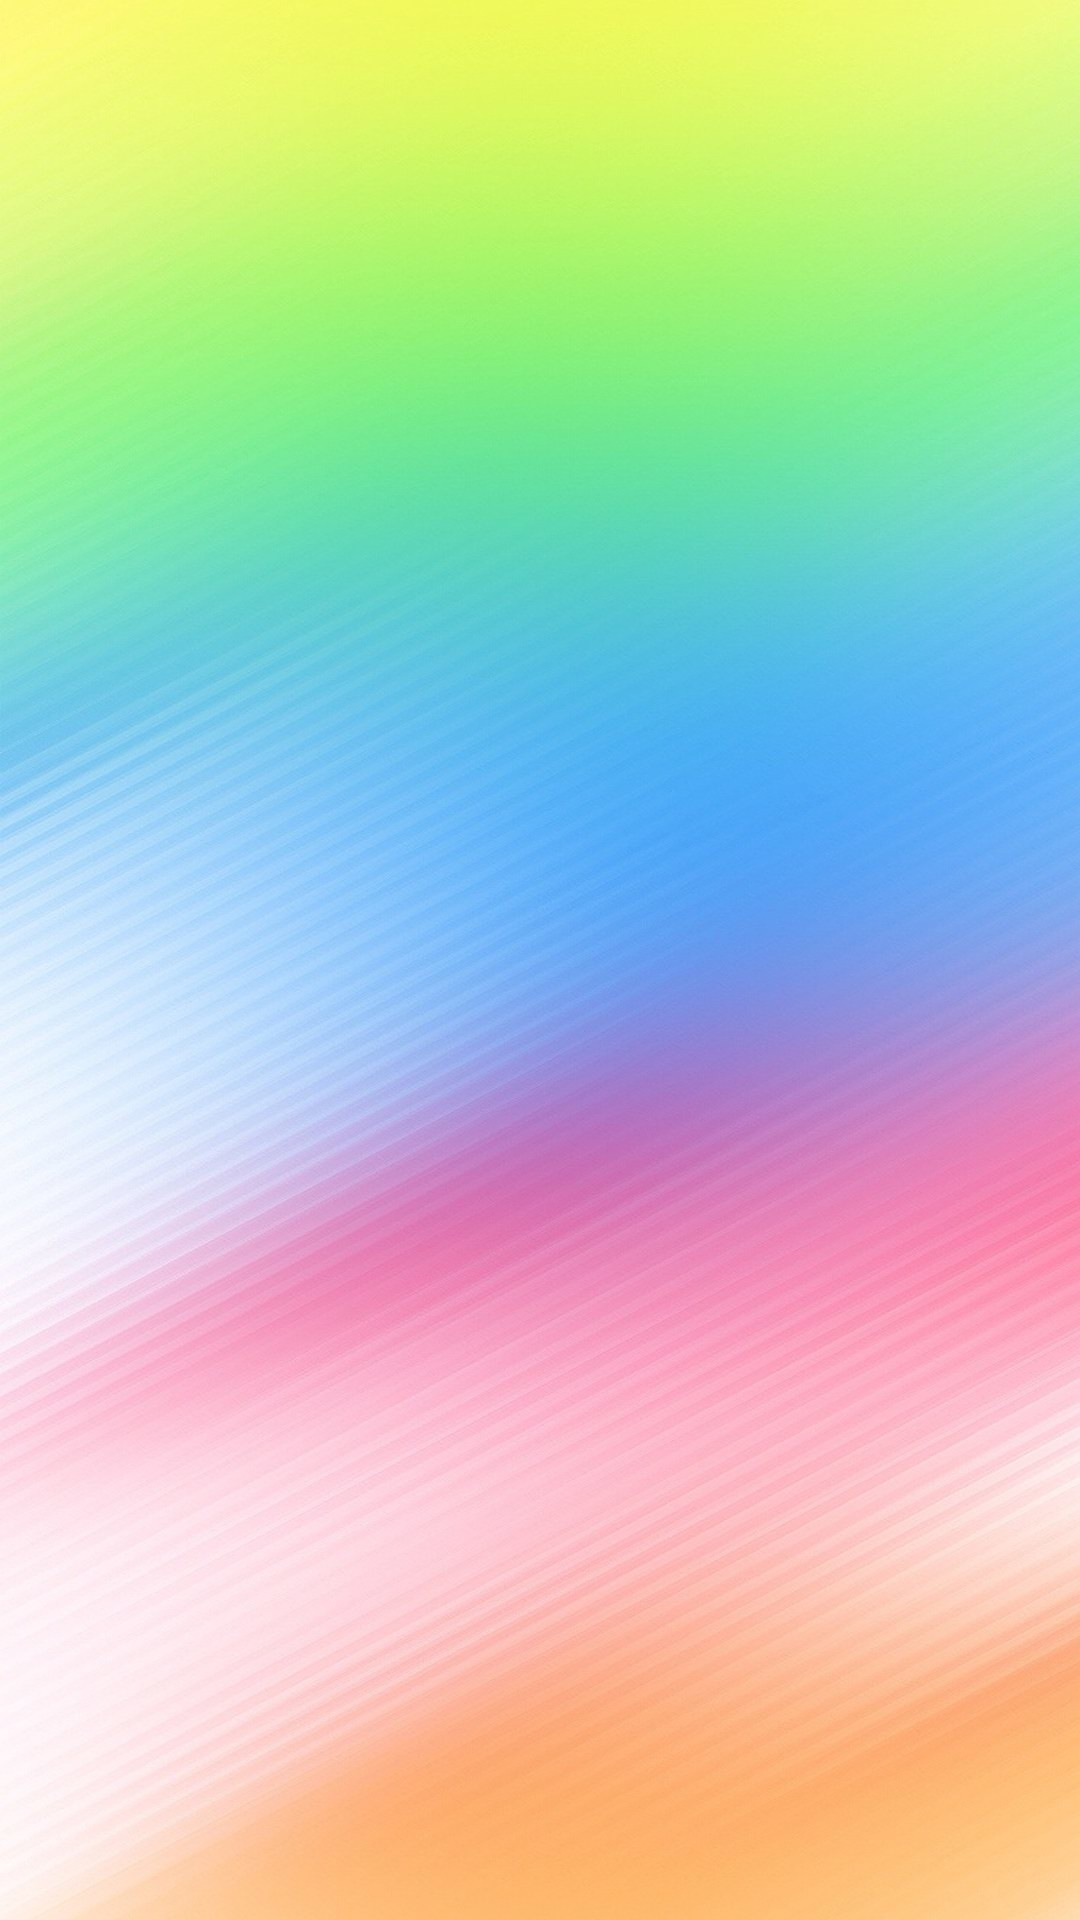 Download iOS 8 Full HD Wallpapers For iPhone And iPad